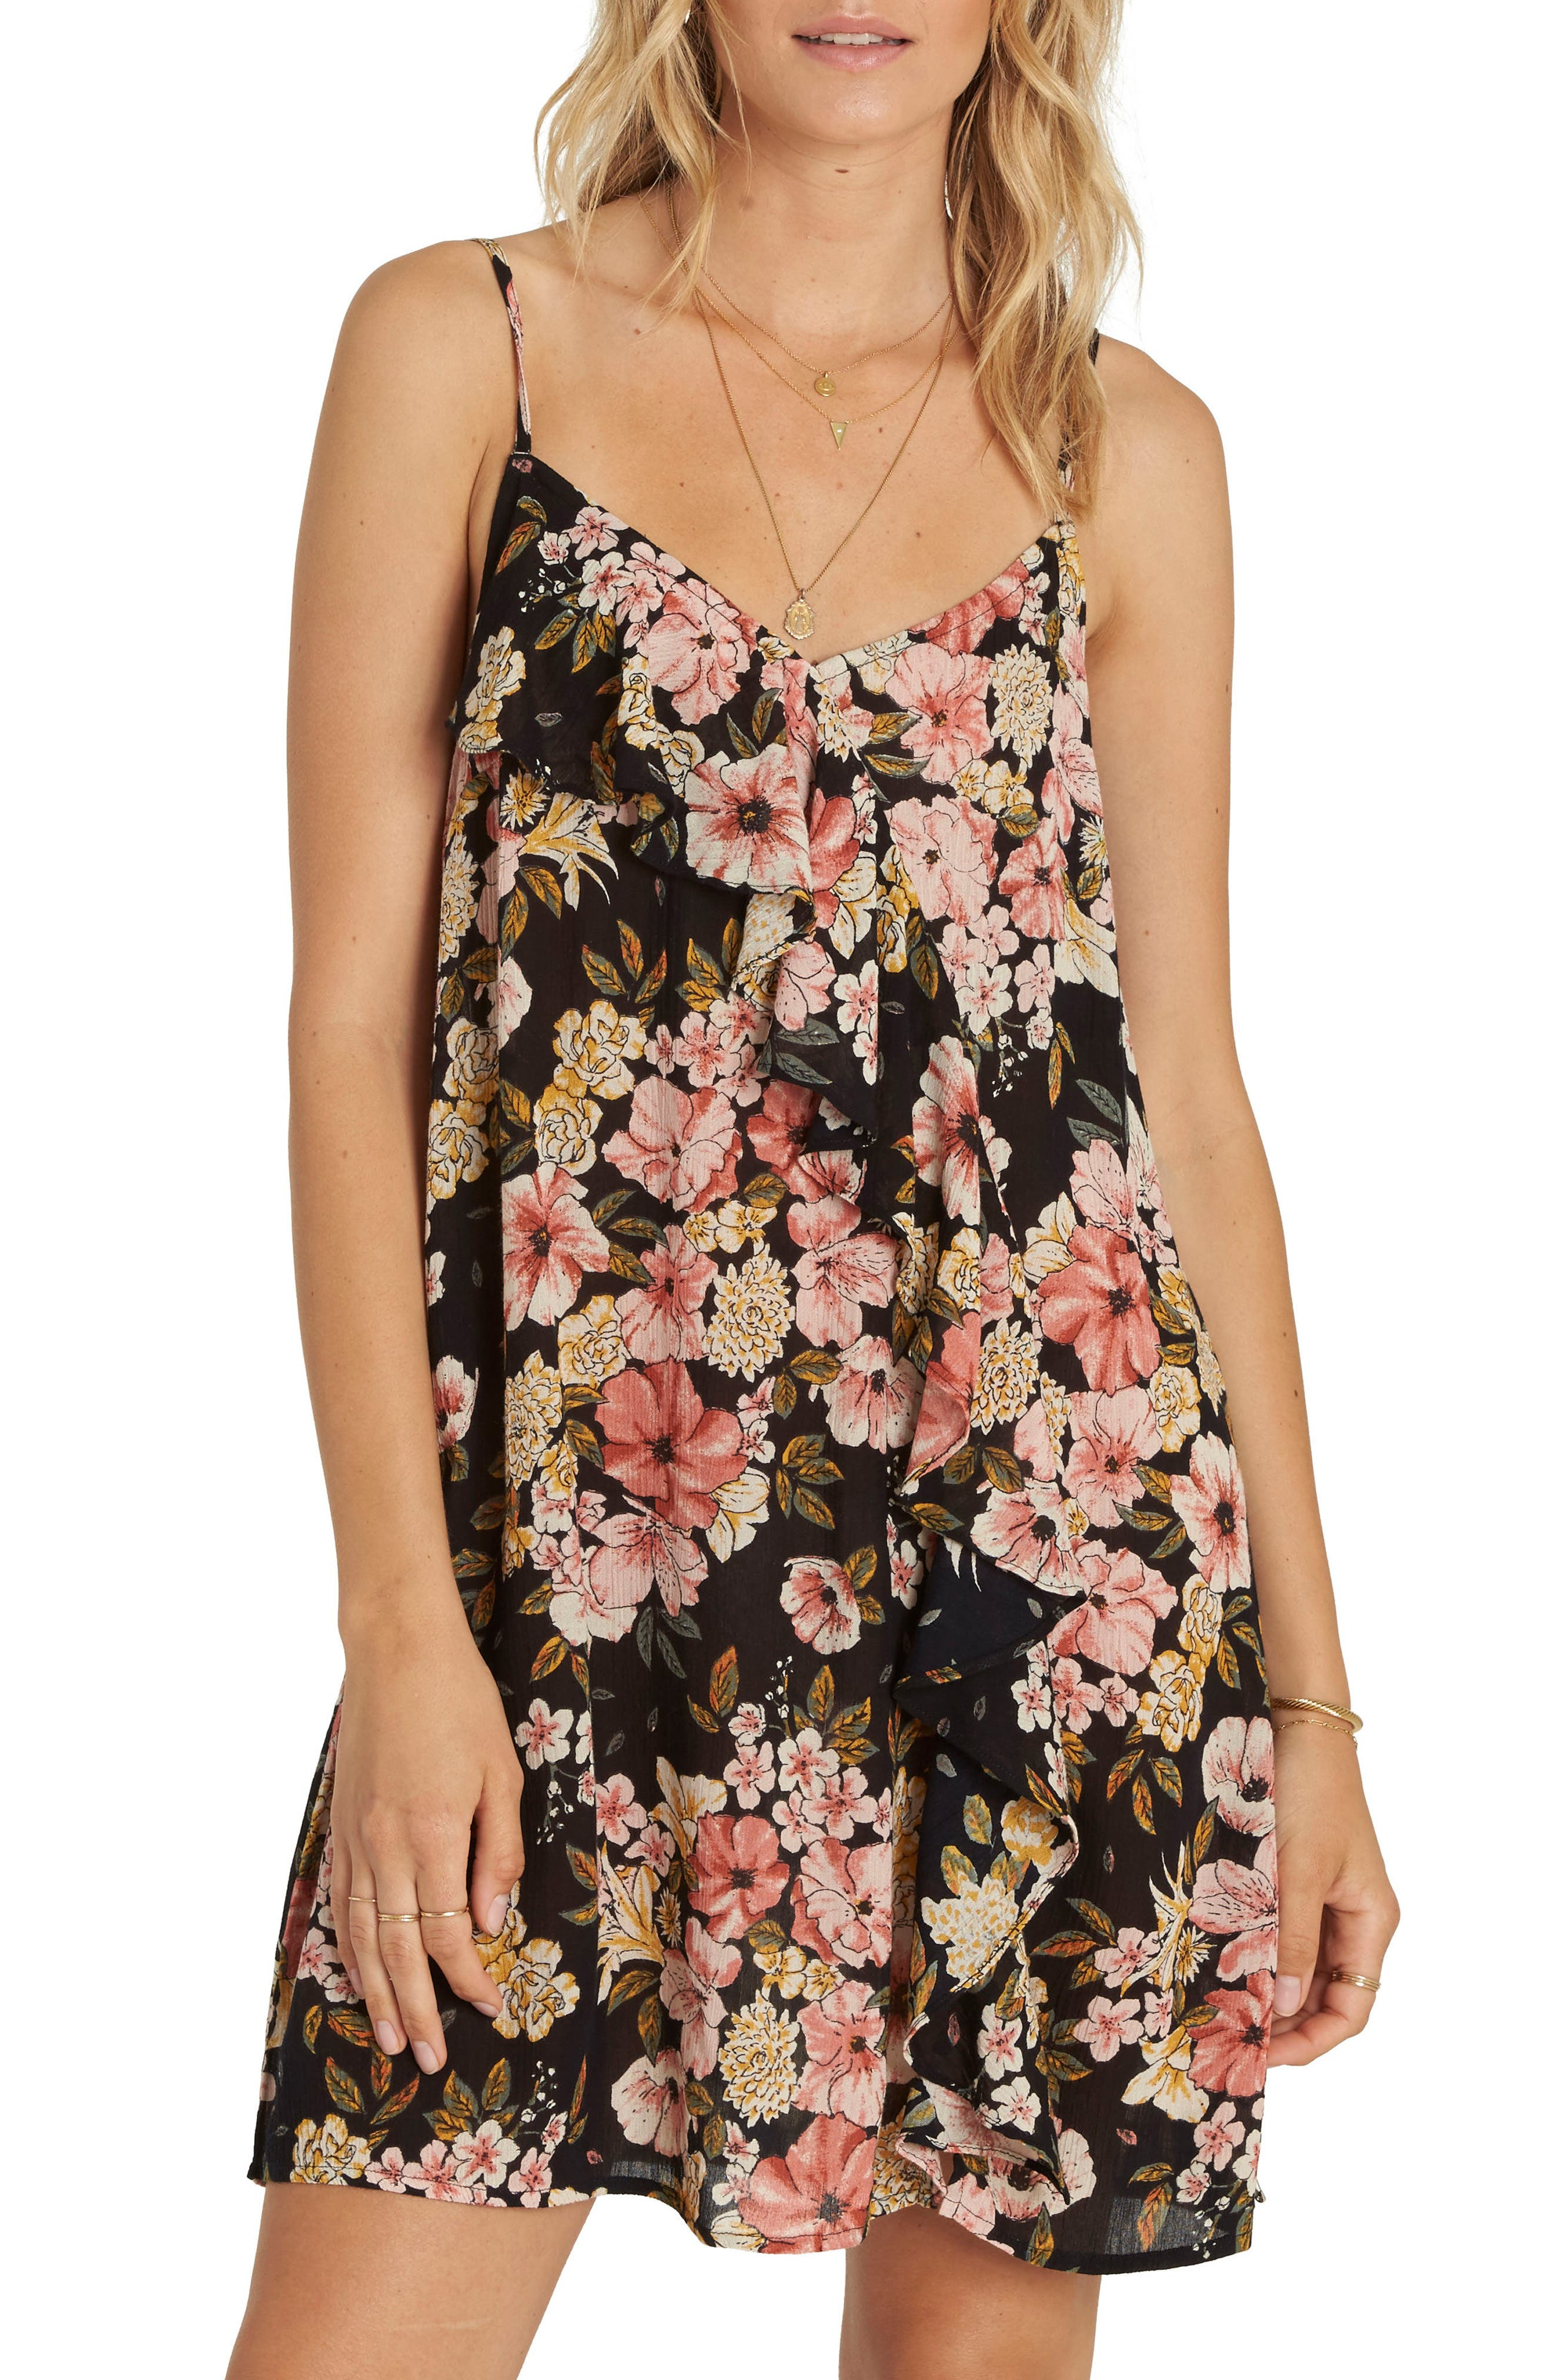 Glass Water Floral Print Ruffle Detail Dress,                         Main,                         color, 001